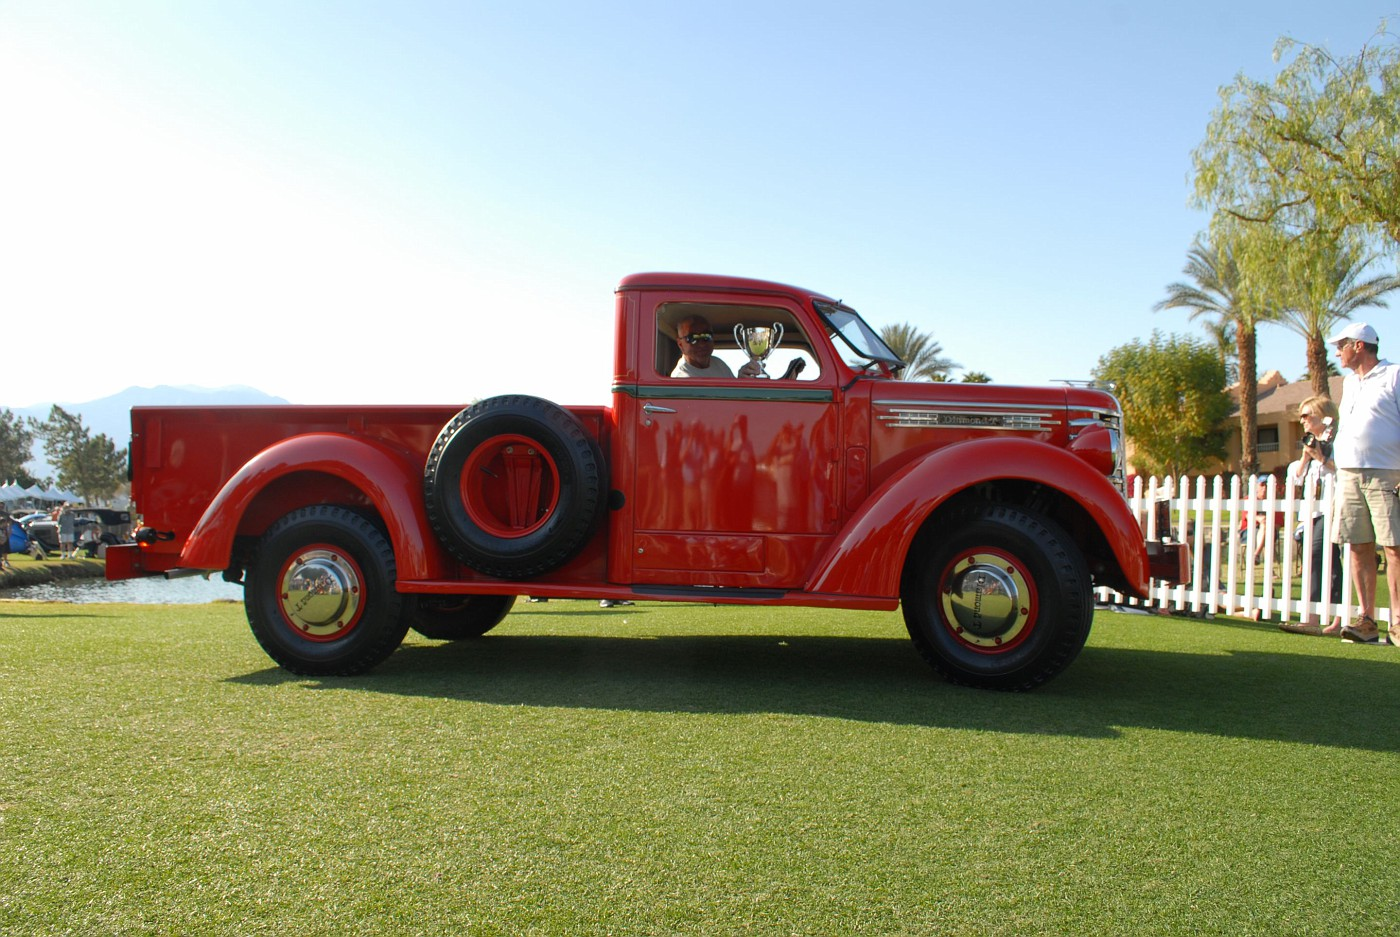 1949 Diamond T pickup owned by Michael McQueen